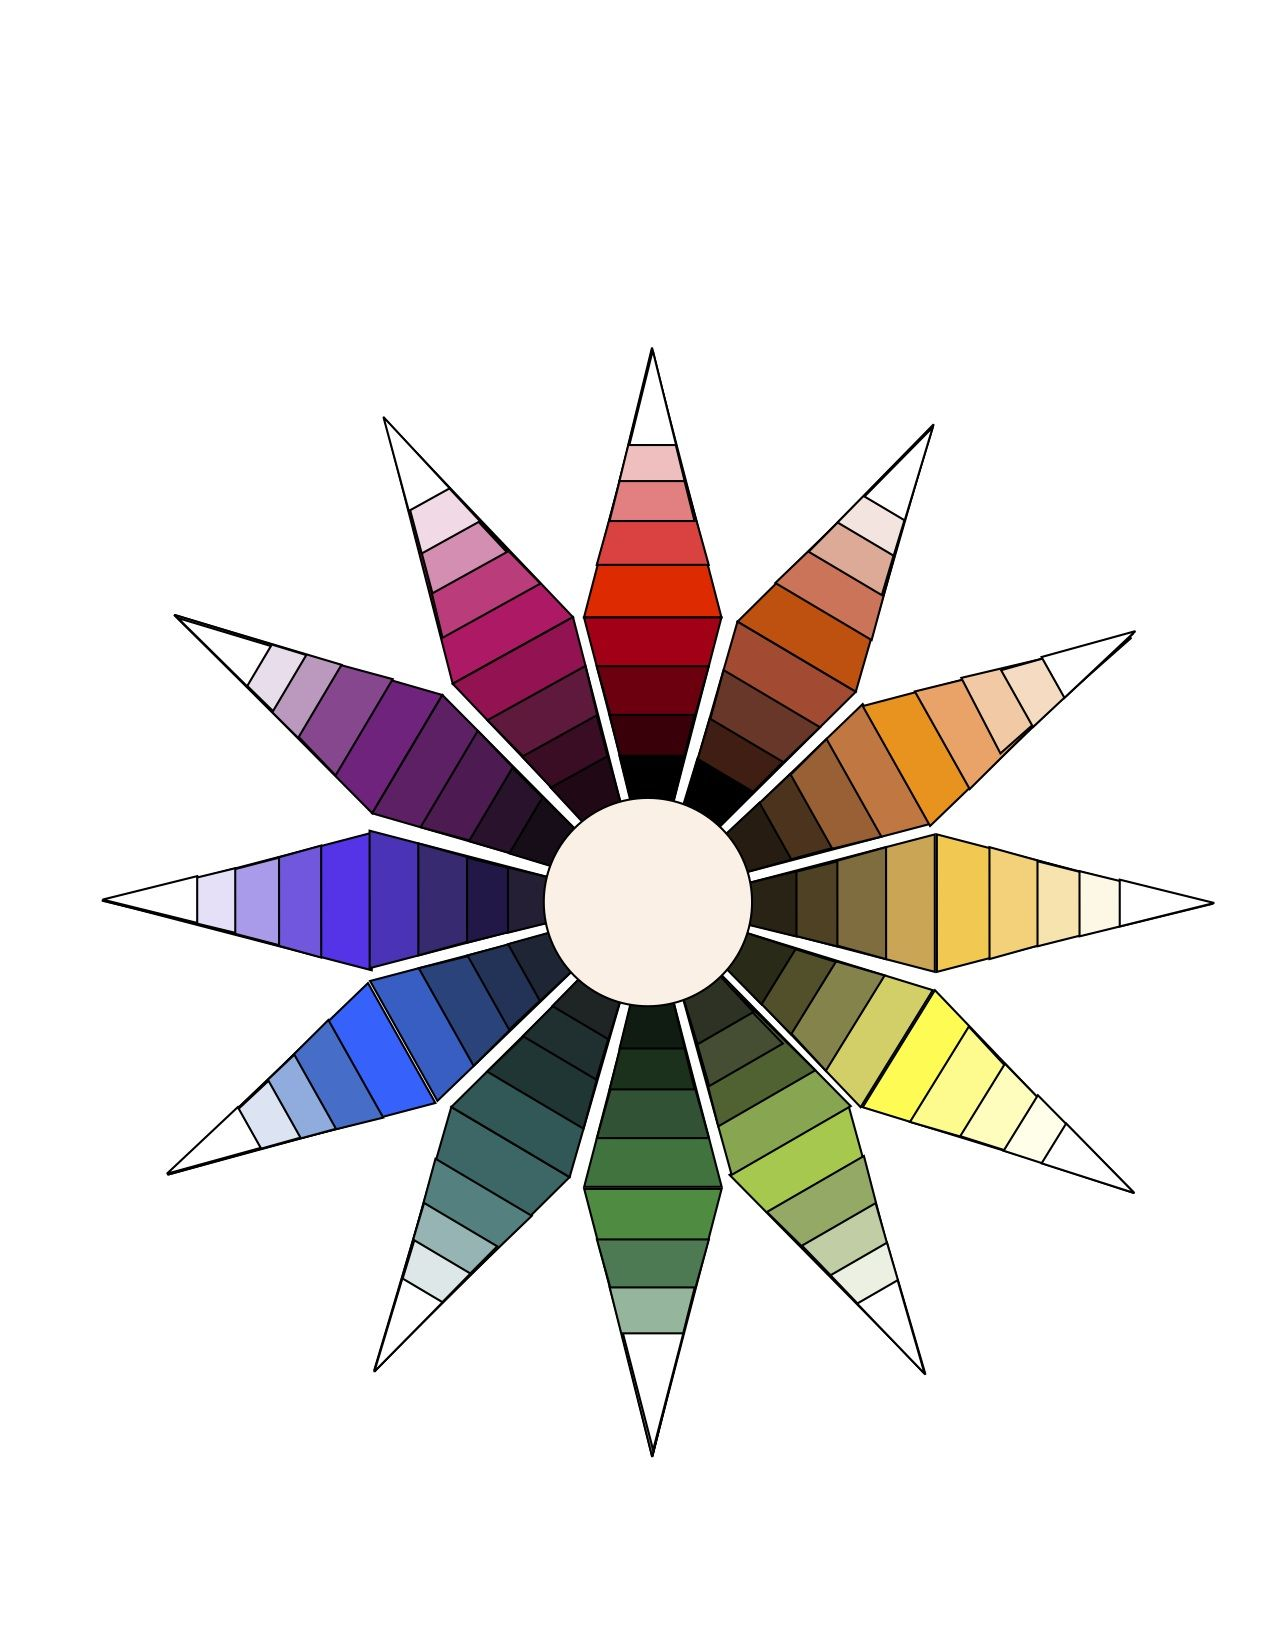 Color Wheel For Reference Only Elements Of Art Color Class Art Projects Art Handouts [ 1650 x 1275 Pixel ]